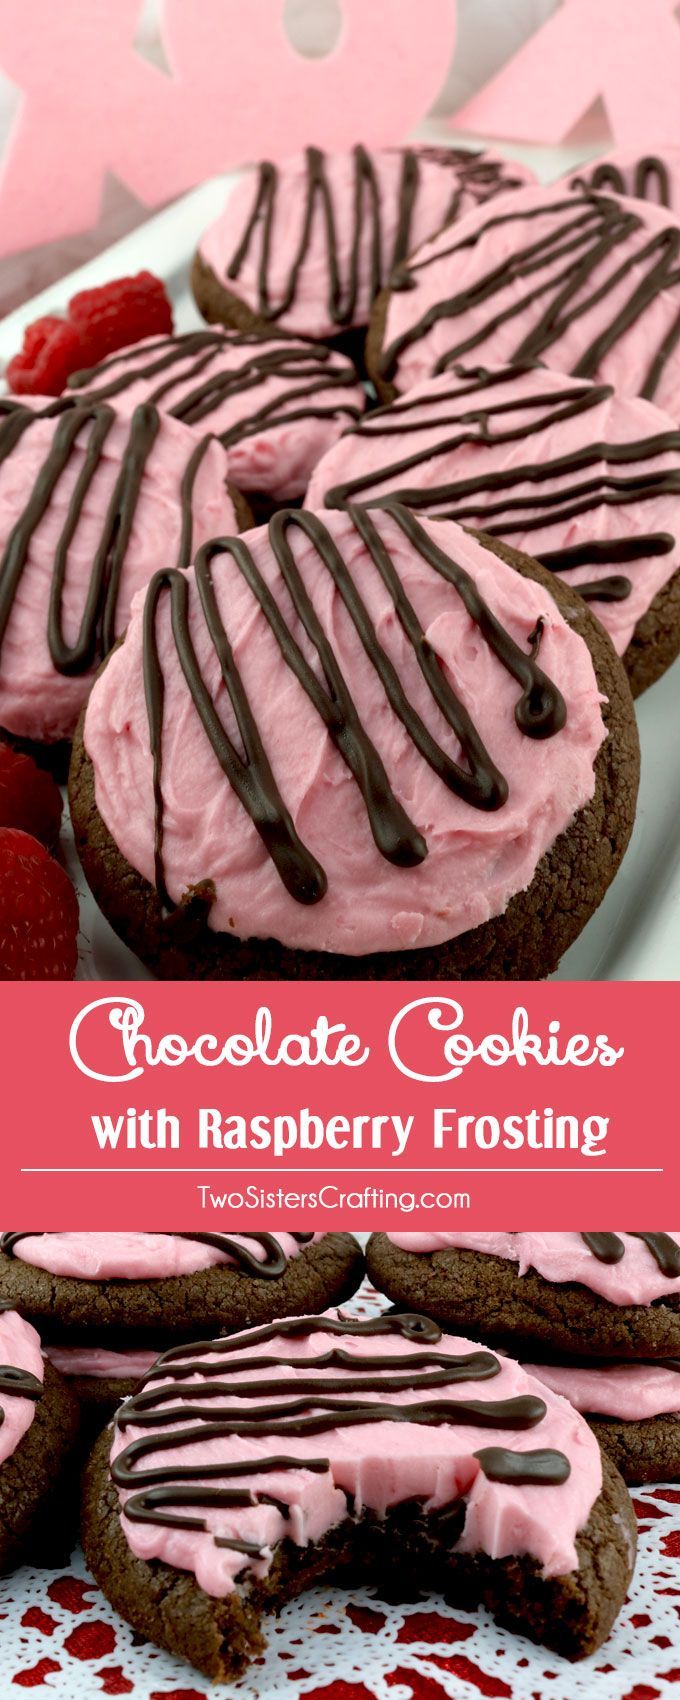 Chocolate Cookies with Raspberry Frosting - sweet, chocolatey and covered with our deliciously creamy Raspberry Buttercream Frosting these yummy frosted cookies are easy to make and a perfect Valentine's Day dessert or treat. Pin this yummy Cookie Recipe for later and and follow us for more great Valentine's Day Food Ideas.